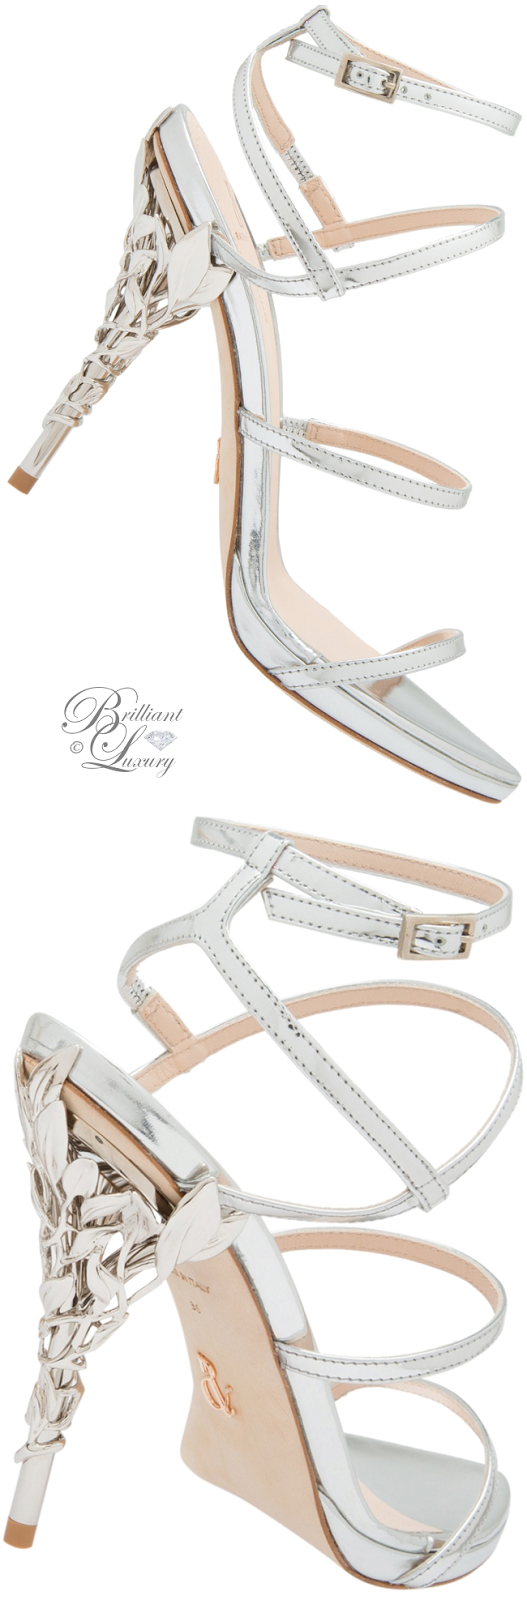 Brilliant Luxury ♦ Ralph and Russo Eden Eve Sandal